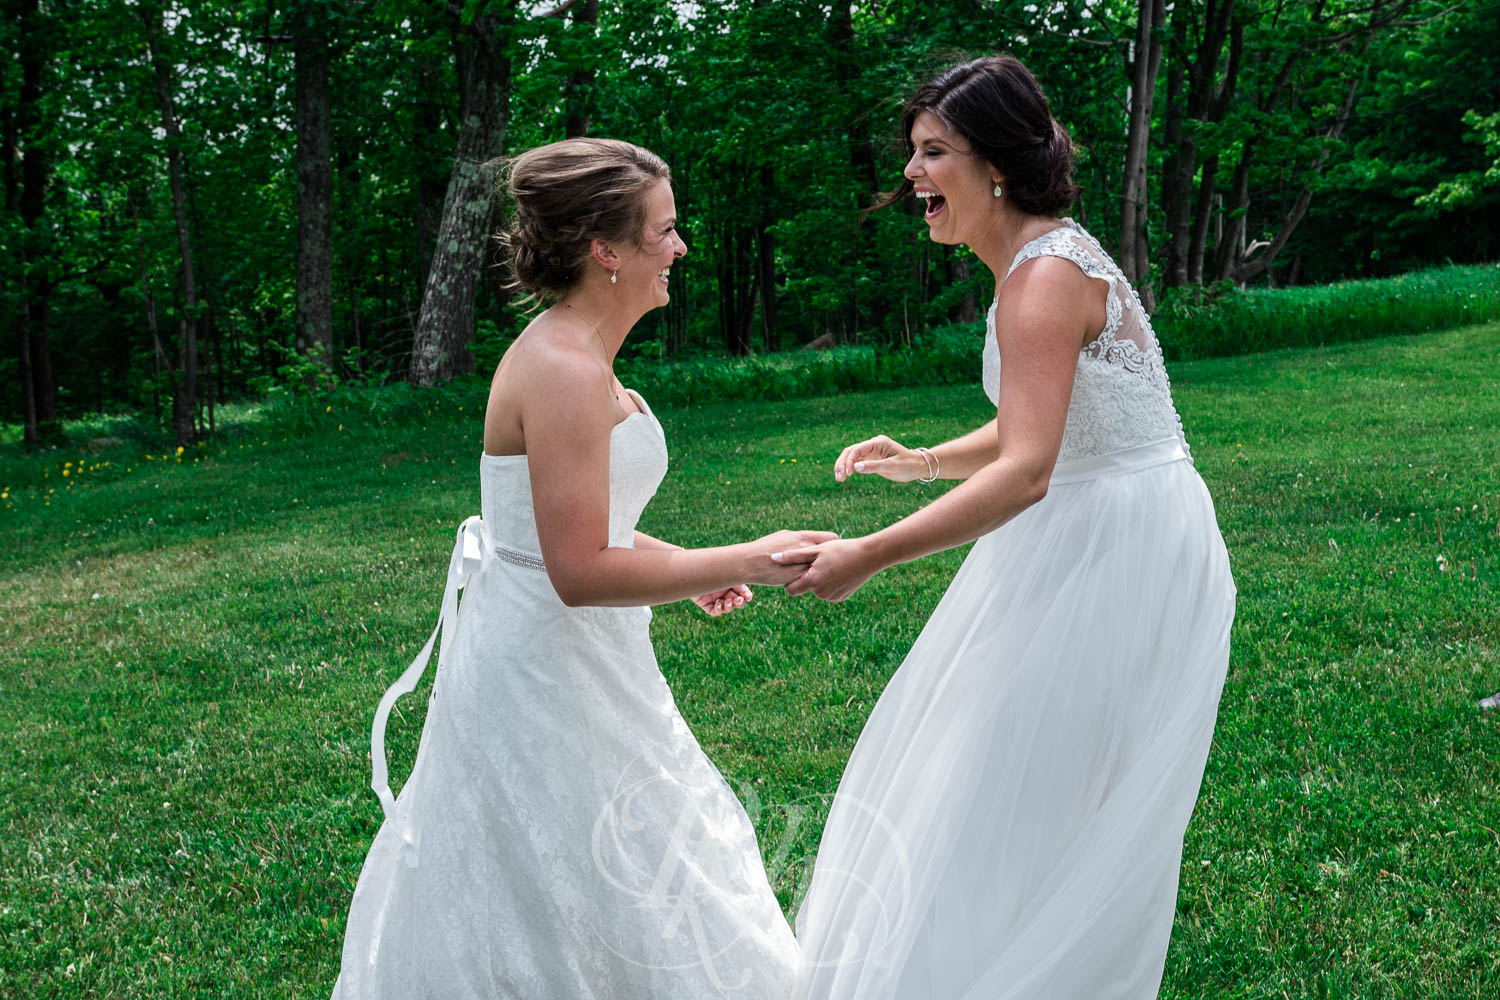 Britni & Paige - LGBT Minnesota Wedding Photography - Spirit Mountain - RKH Images  (16 of 32).jpg